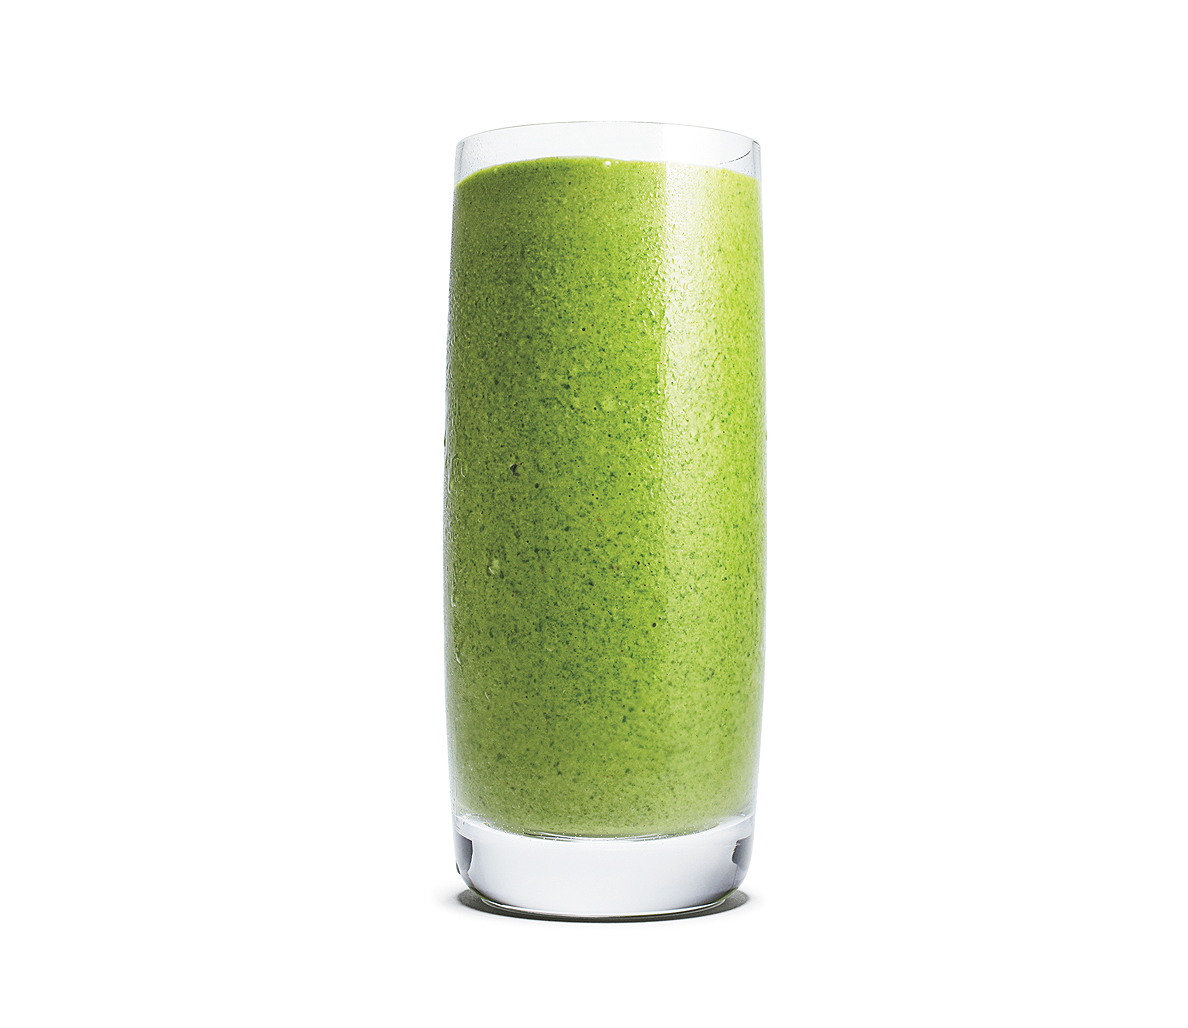 10 Delicious Green Smoothie Recipes That Help Fight Weight Gain